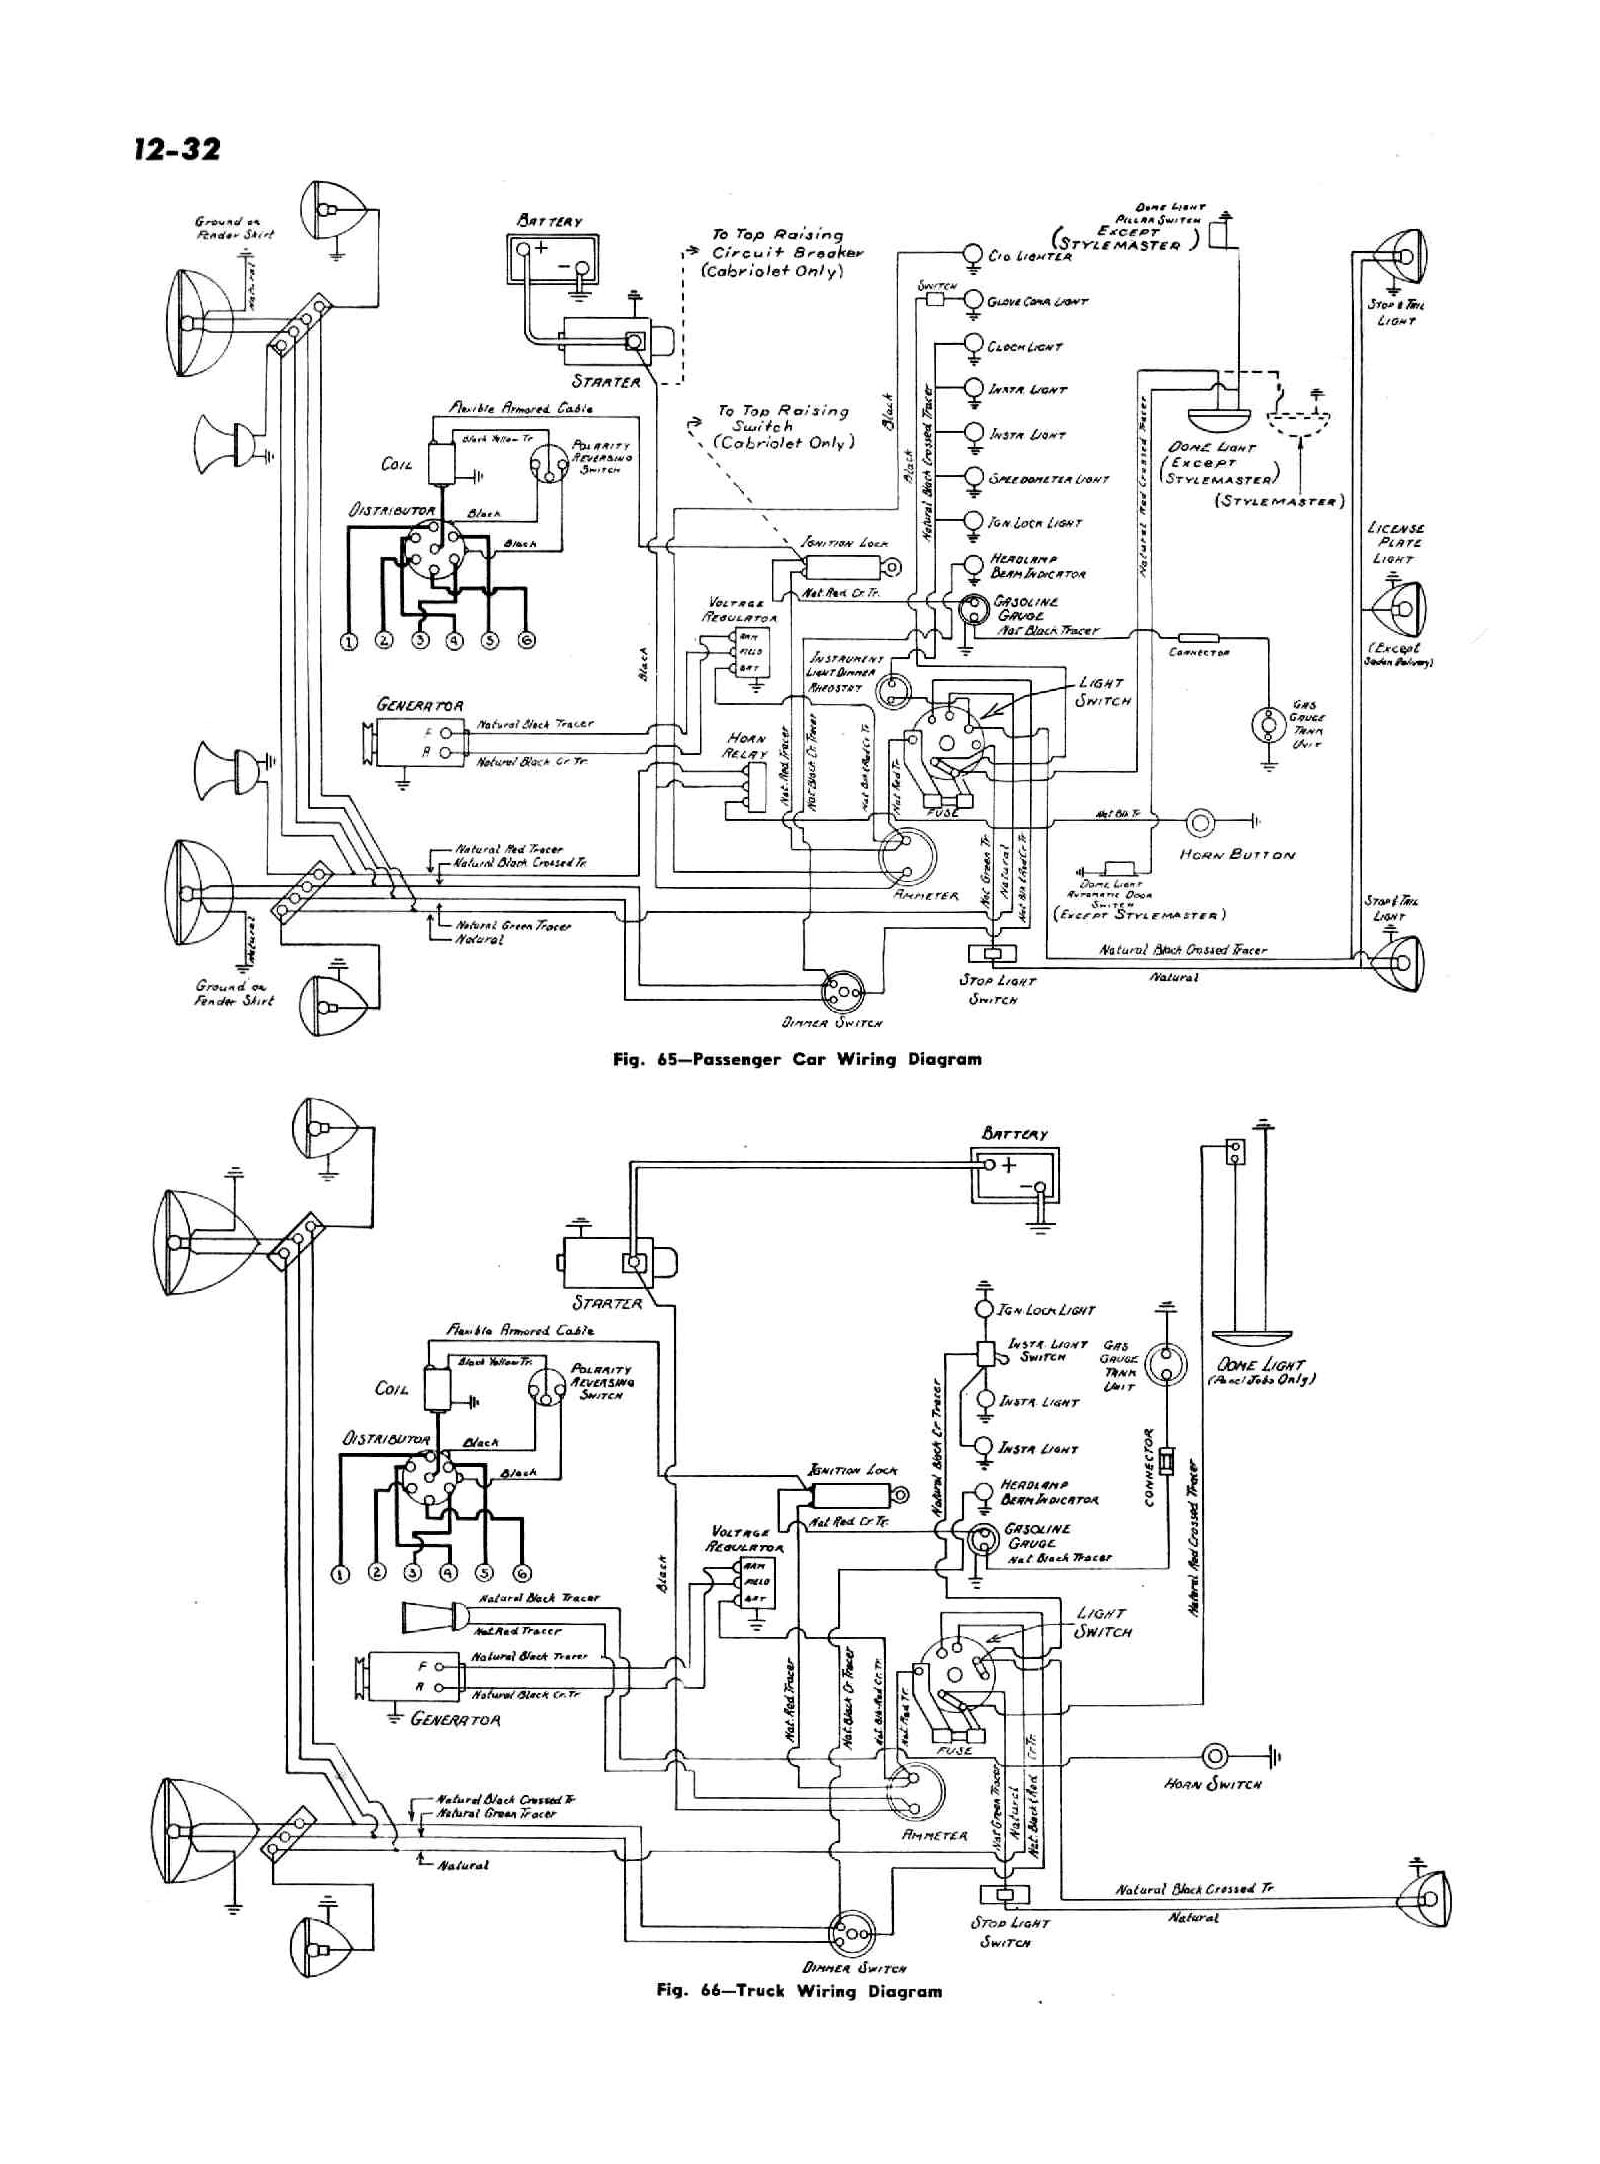 1947 buick wiring diagram free download wiring diagrams schematics dodge fuel filter replacement chevy wiring diagrams 1947 lincoln continental wiring